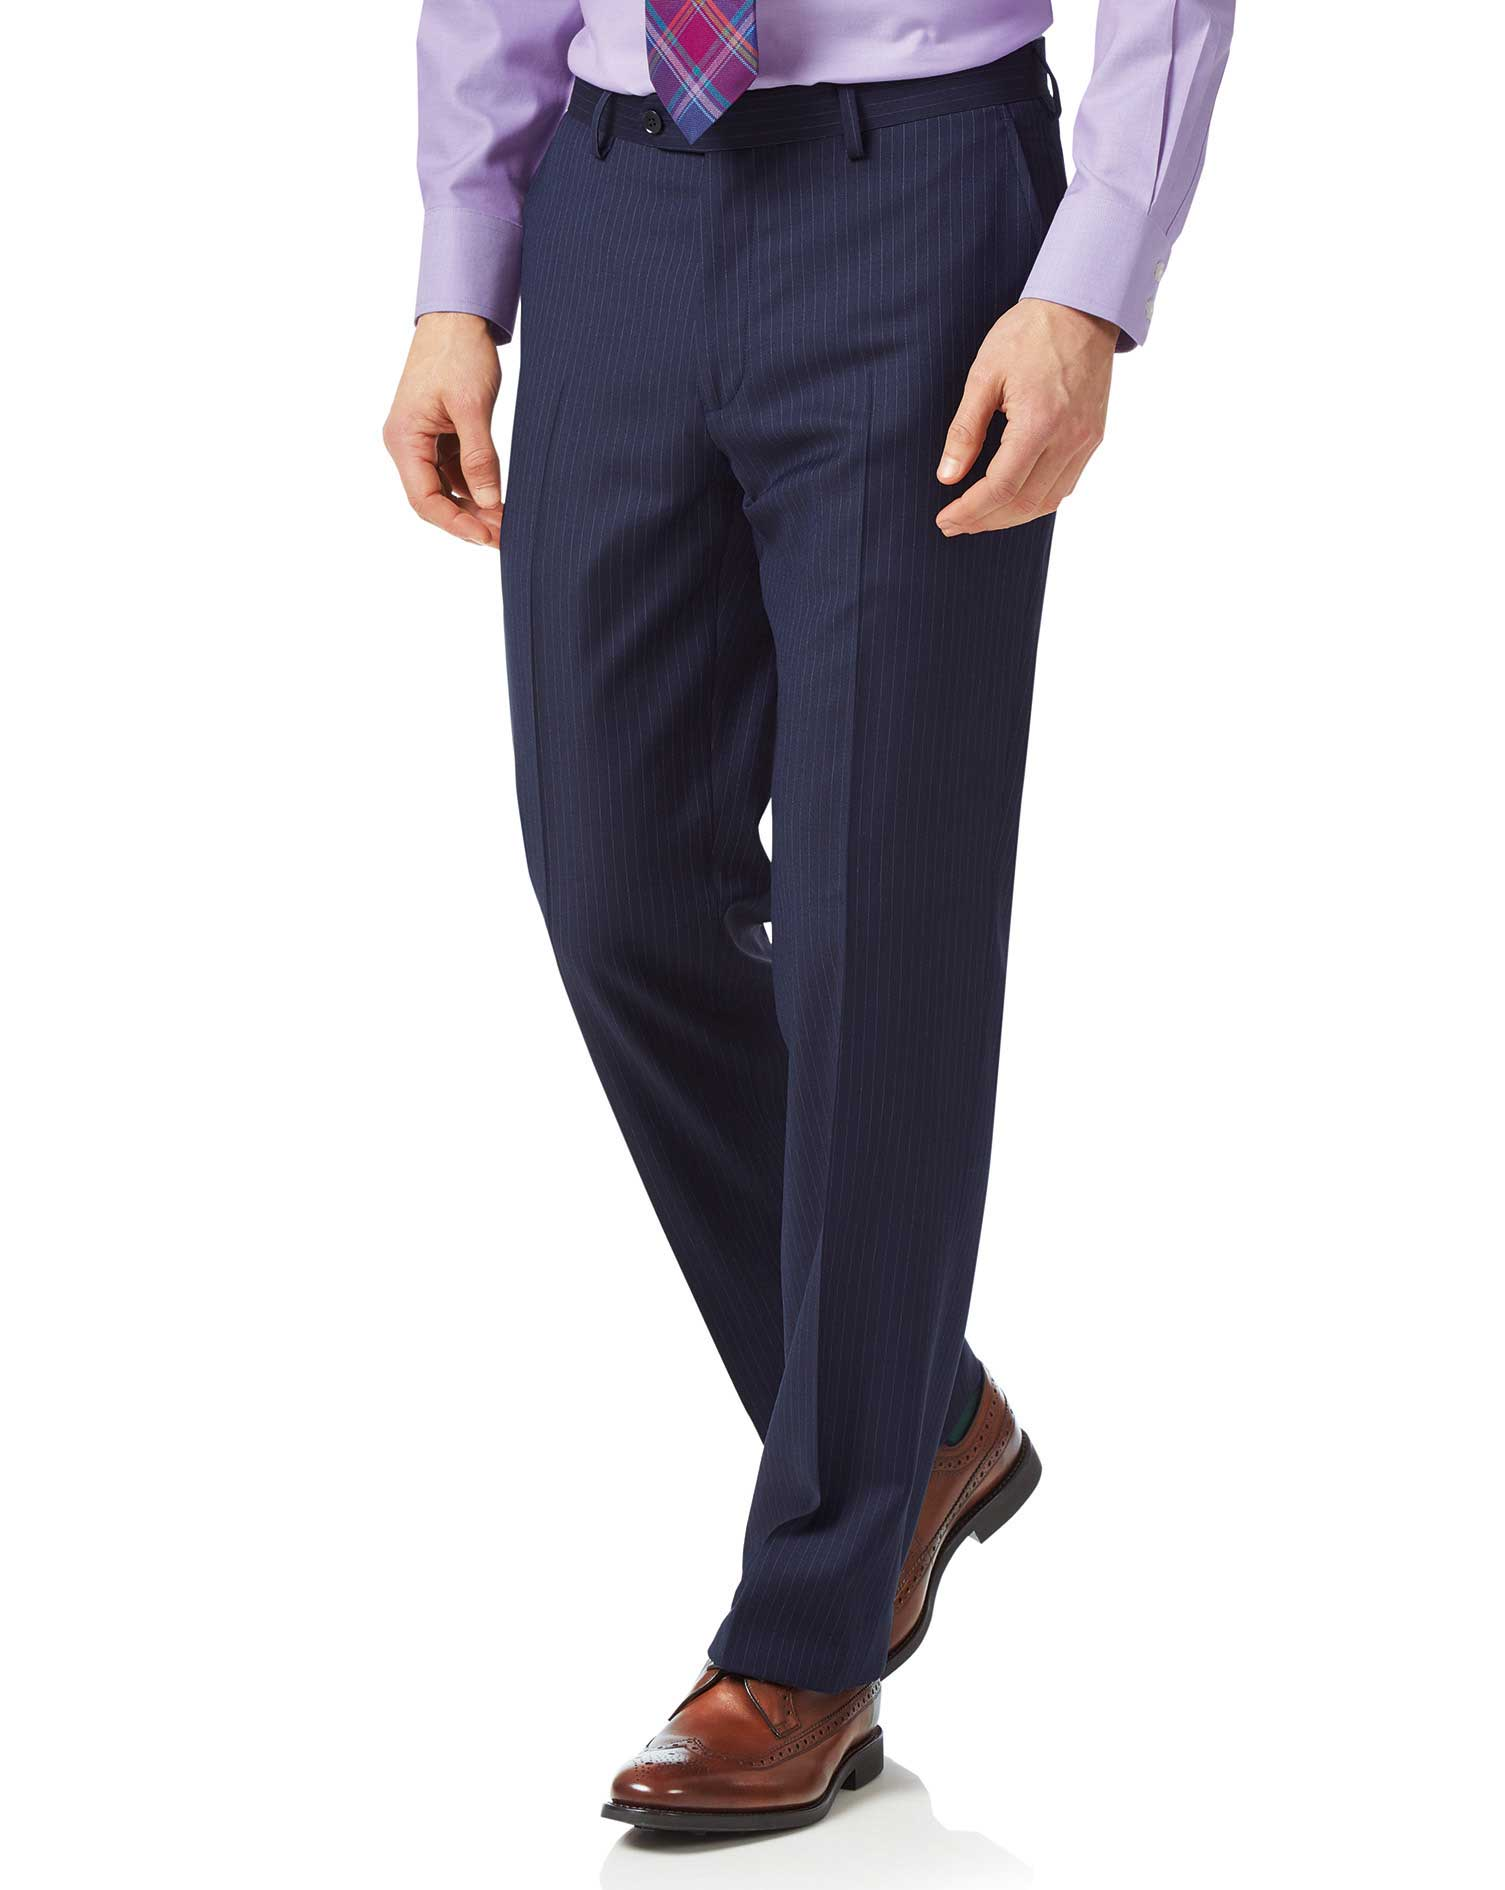 Blue Classic Fit Twill Business Suit Trousers Size W32 L30 by Charles Tyrwhitt